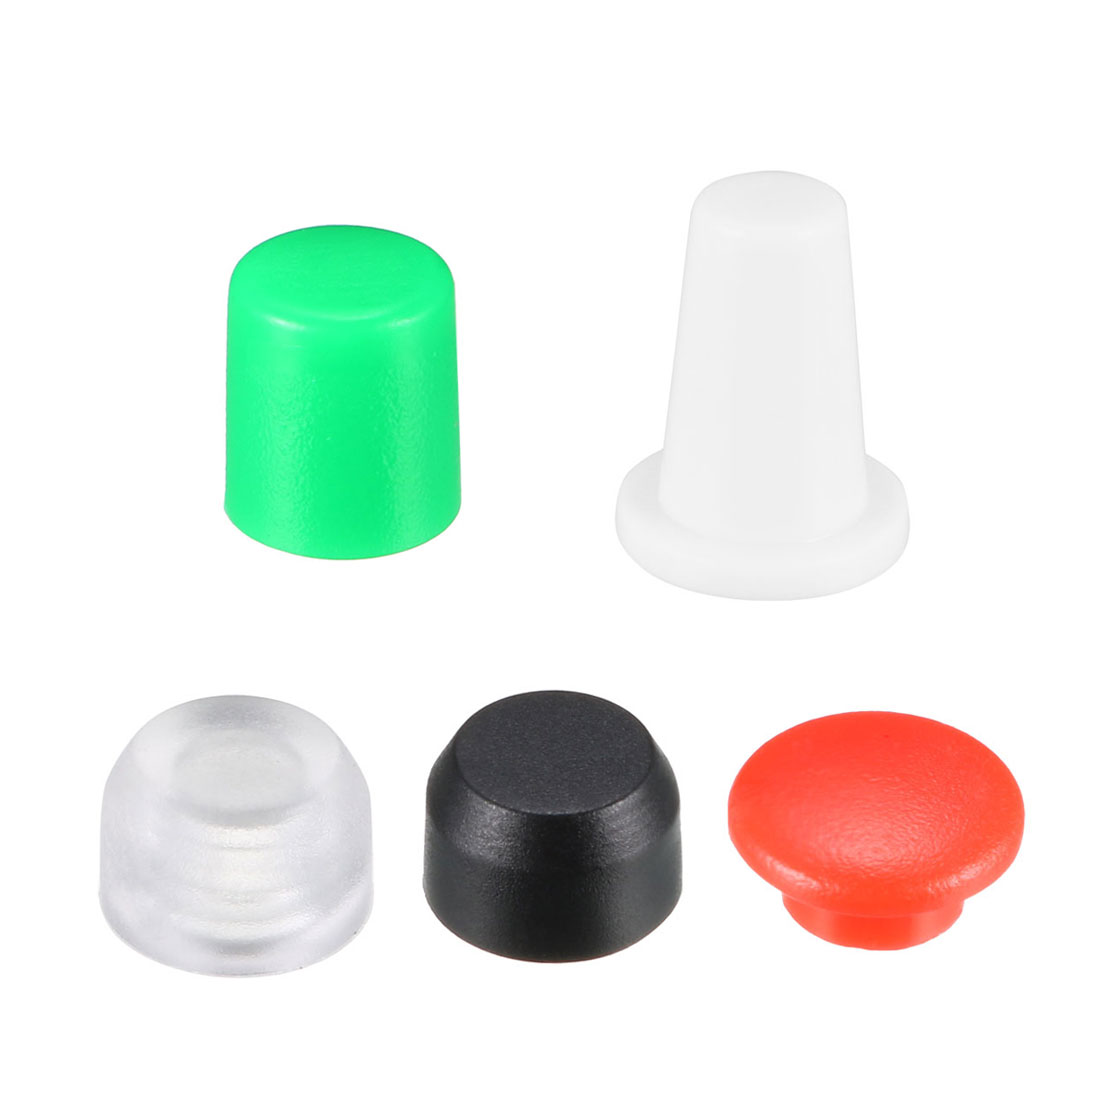 Uxcell 20/25Pcs Push Button Tactile Switch 3/3.1/3.3mm Hole Dia. Plastic Caps Protector For 6x6 Micro Switch